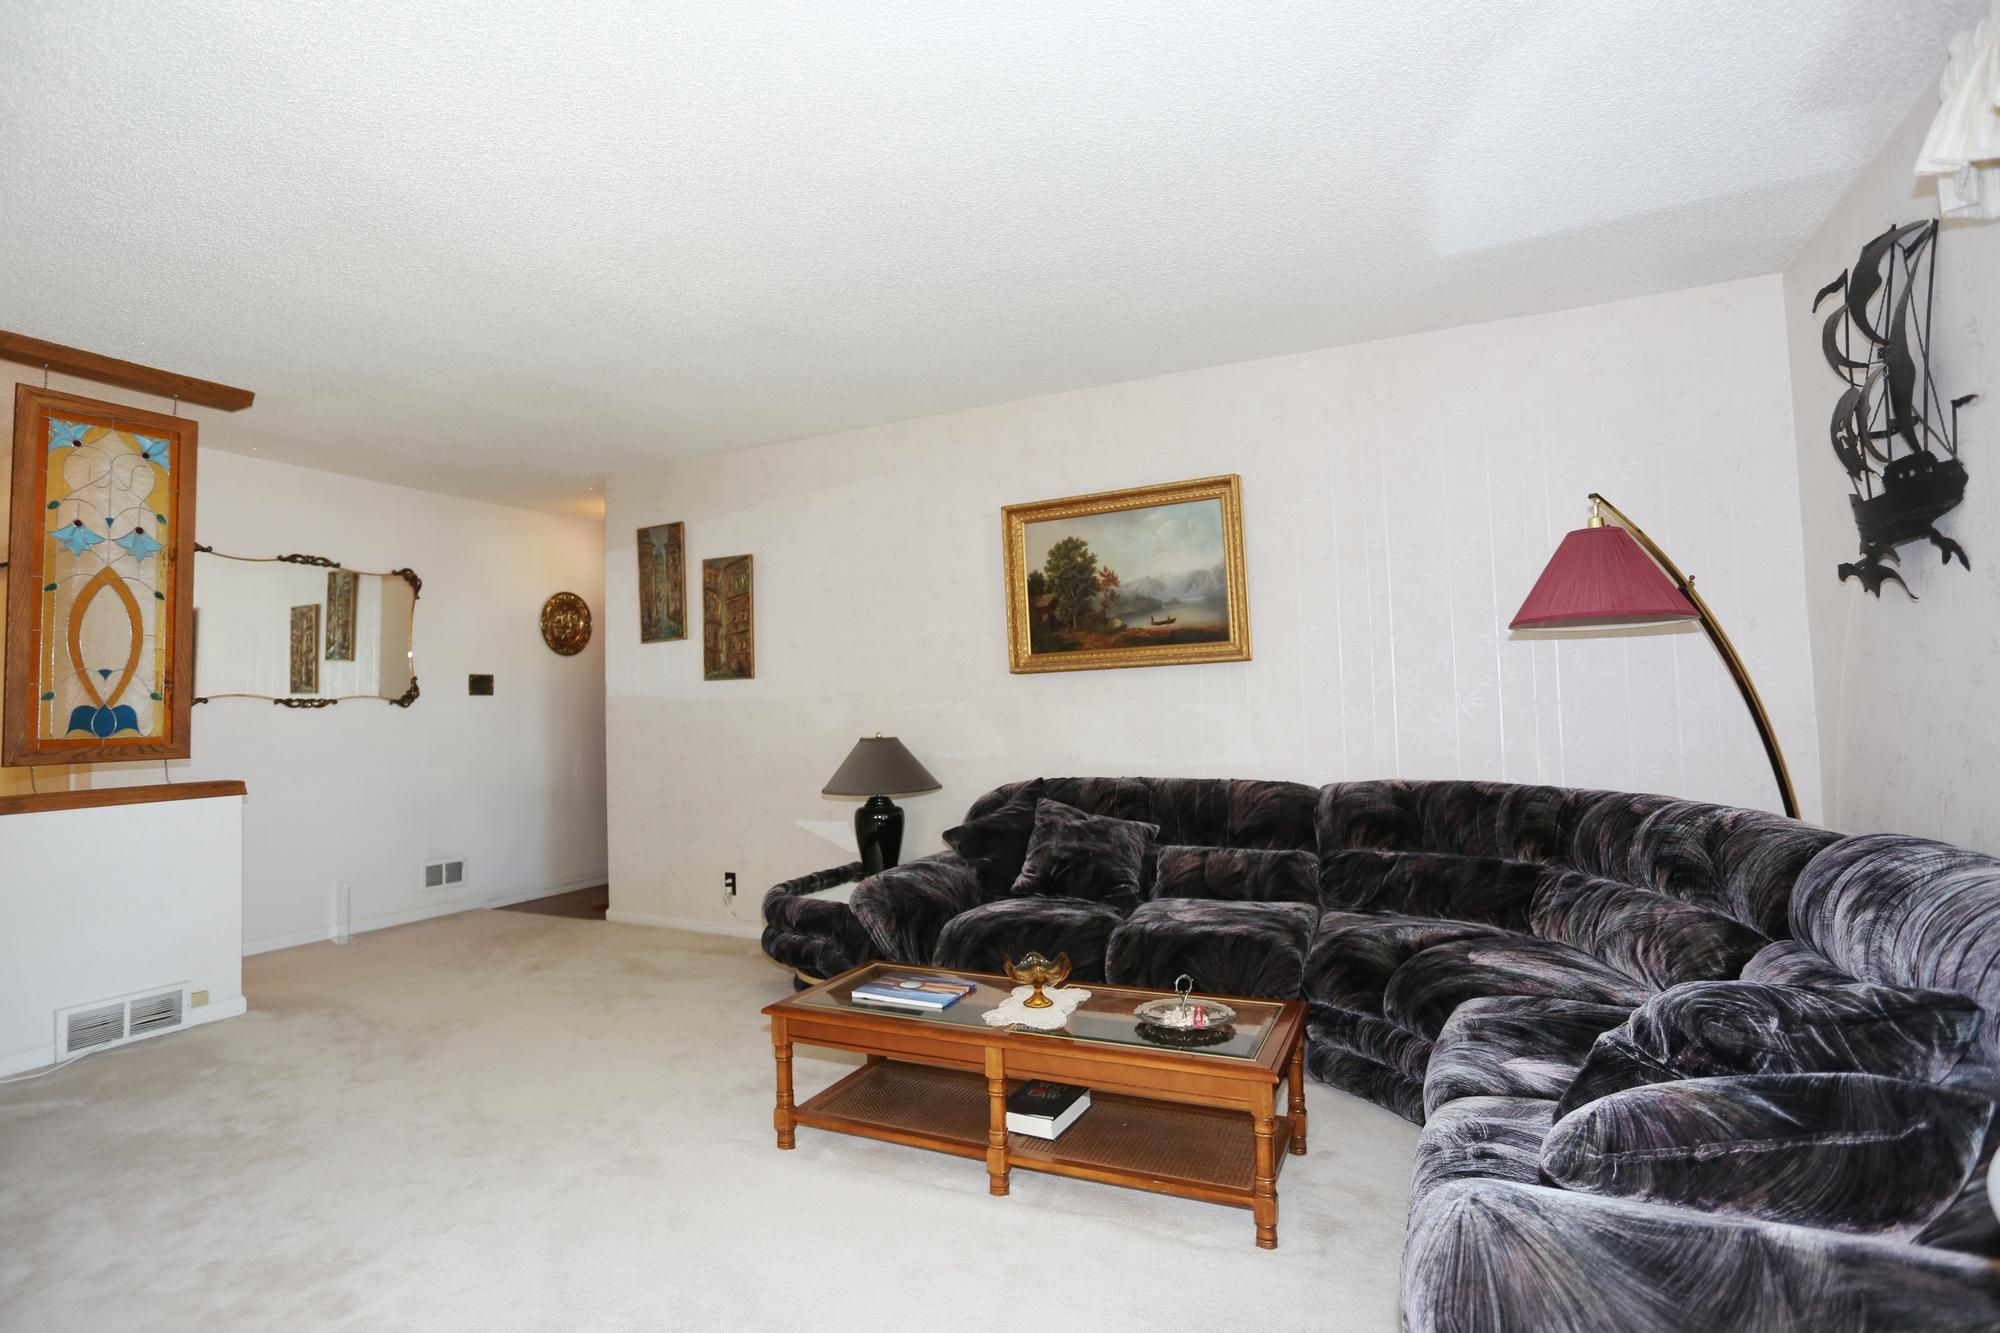 Photo 6: Photos: 1320 Valour Road in Winnipeg: West End Single Family Detached for sale (5C)  : MLS®# 1816744